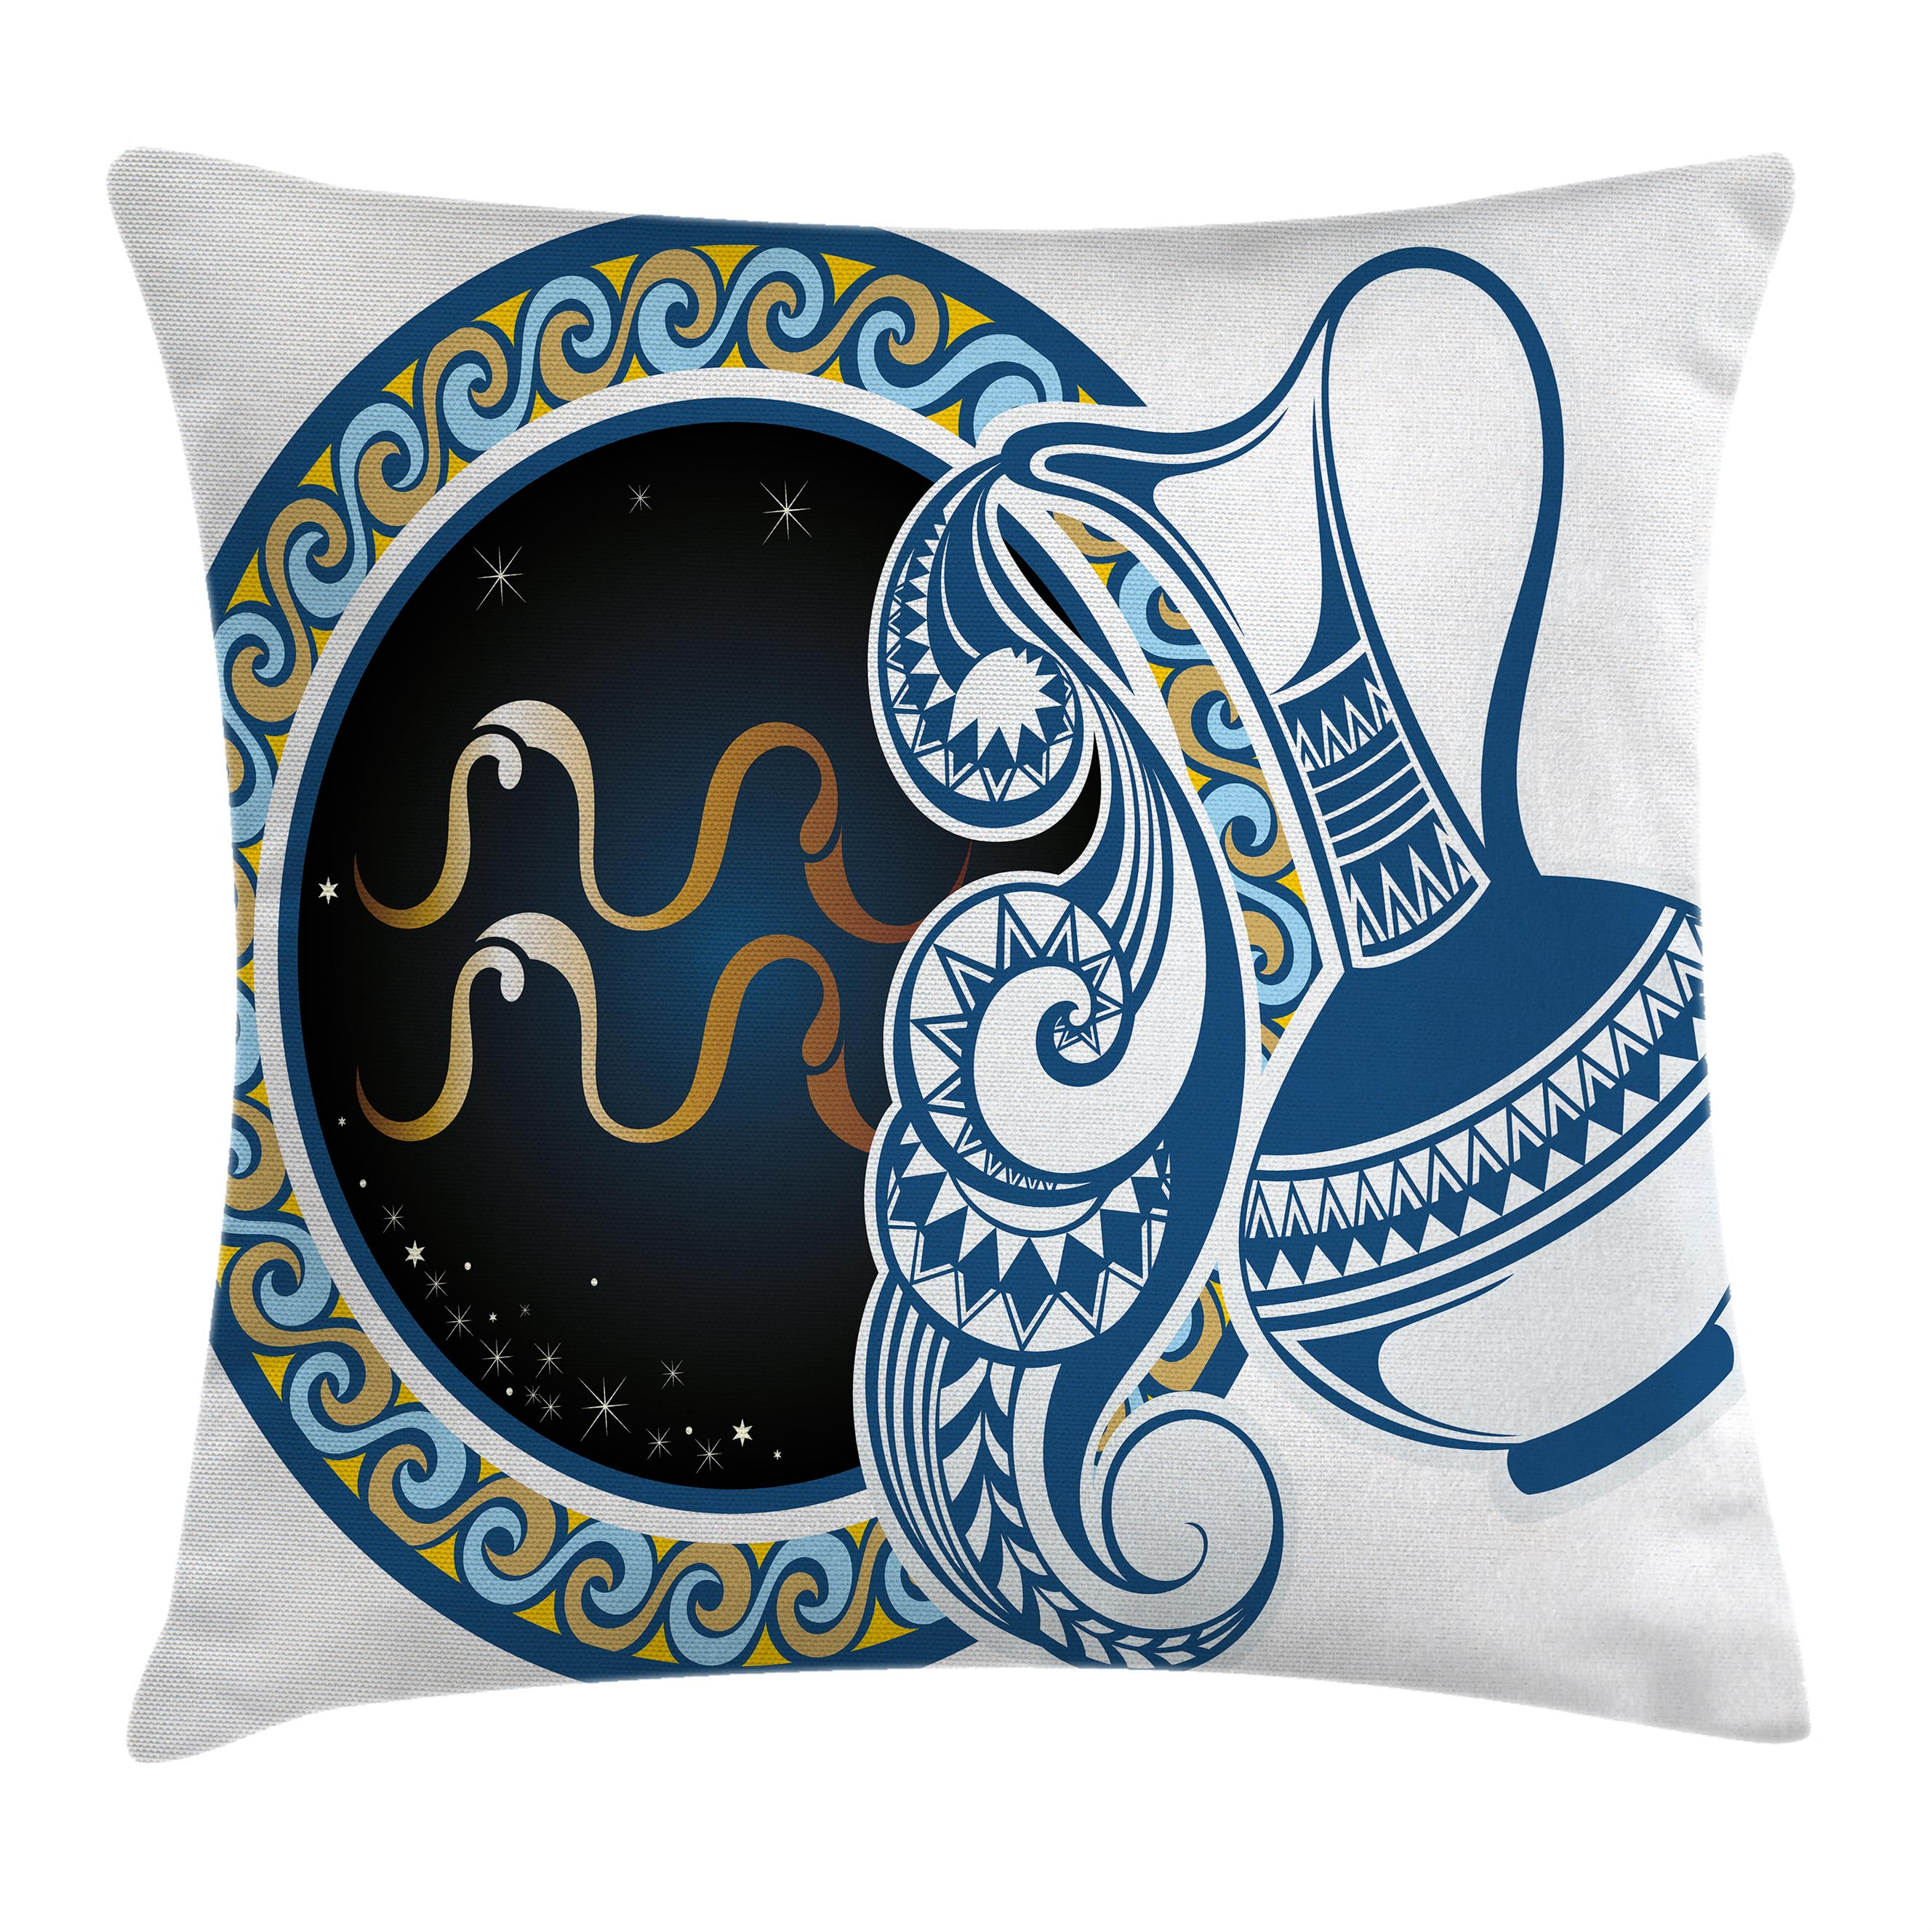 Zodiac Decor Throw Pillow Cushion Cover, Image of Aquarius Sign with Jug and Circular Globe World Form on Background, Decorative Square Accent Pillow Case, 16 X 16 Inches, Blue Gold, by Ambesonne